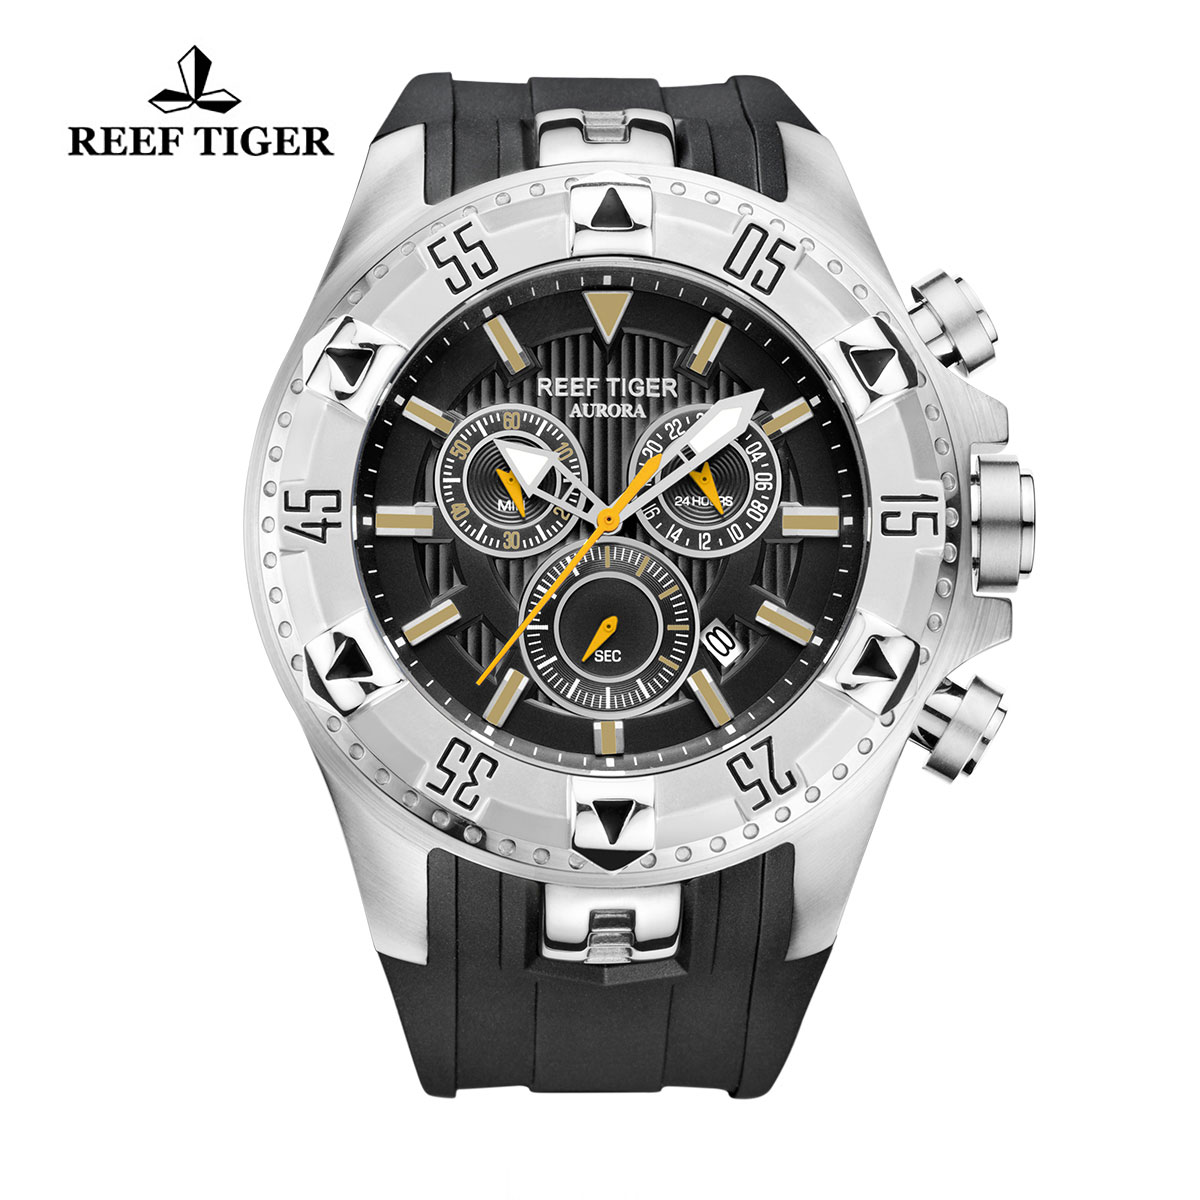 Reef Tiger Hercules Sport Watches Chronograph Steel Case Black Rubber Black Dial Watch RGA303-YBB